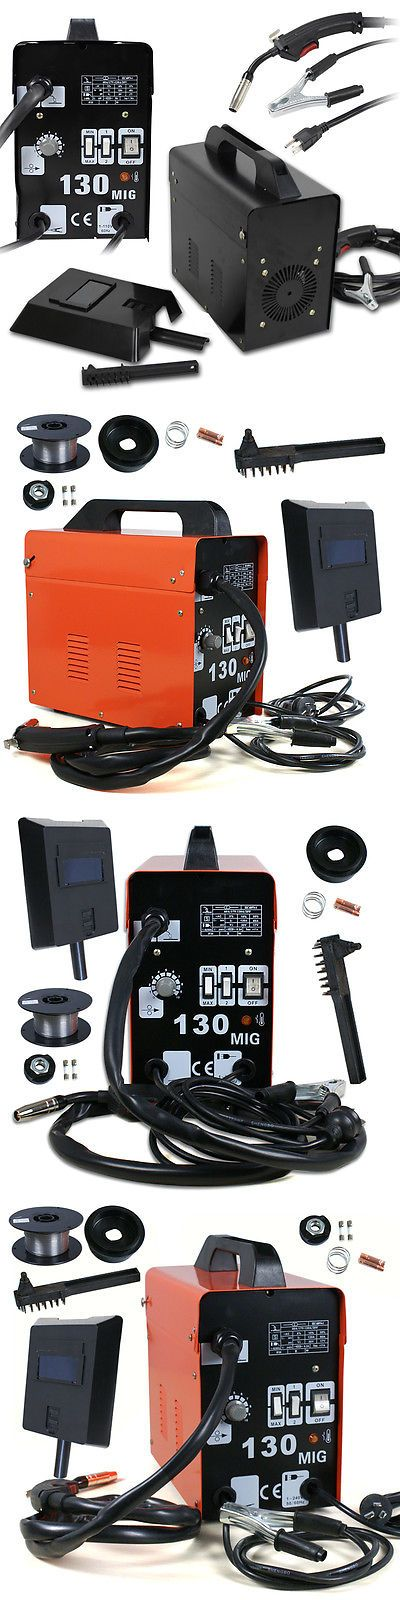 Welding and Soldering Tools 46413: Gas Less Flux Core Wire Welder Welding Machine Cooling Fan 110V Mig-100 Mig-130 -> BUY IT NOW ONLY: $81.85 on eBay!